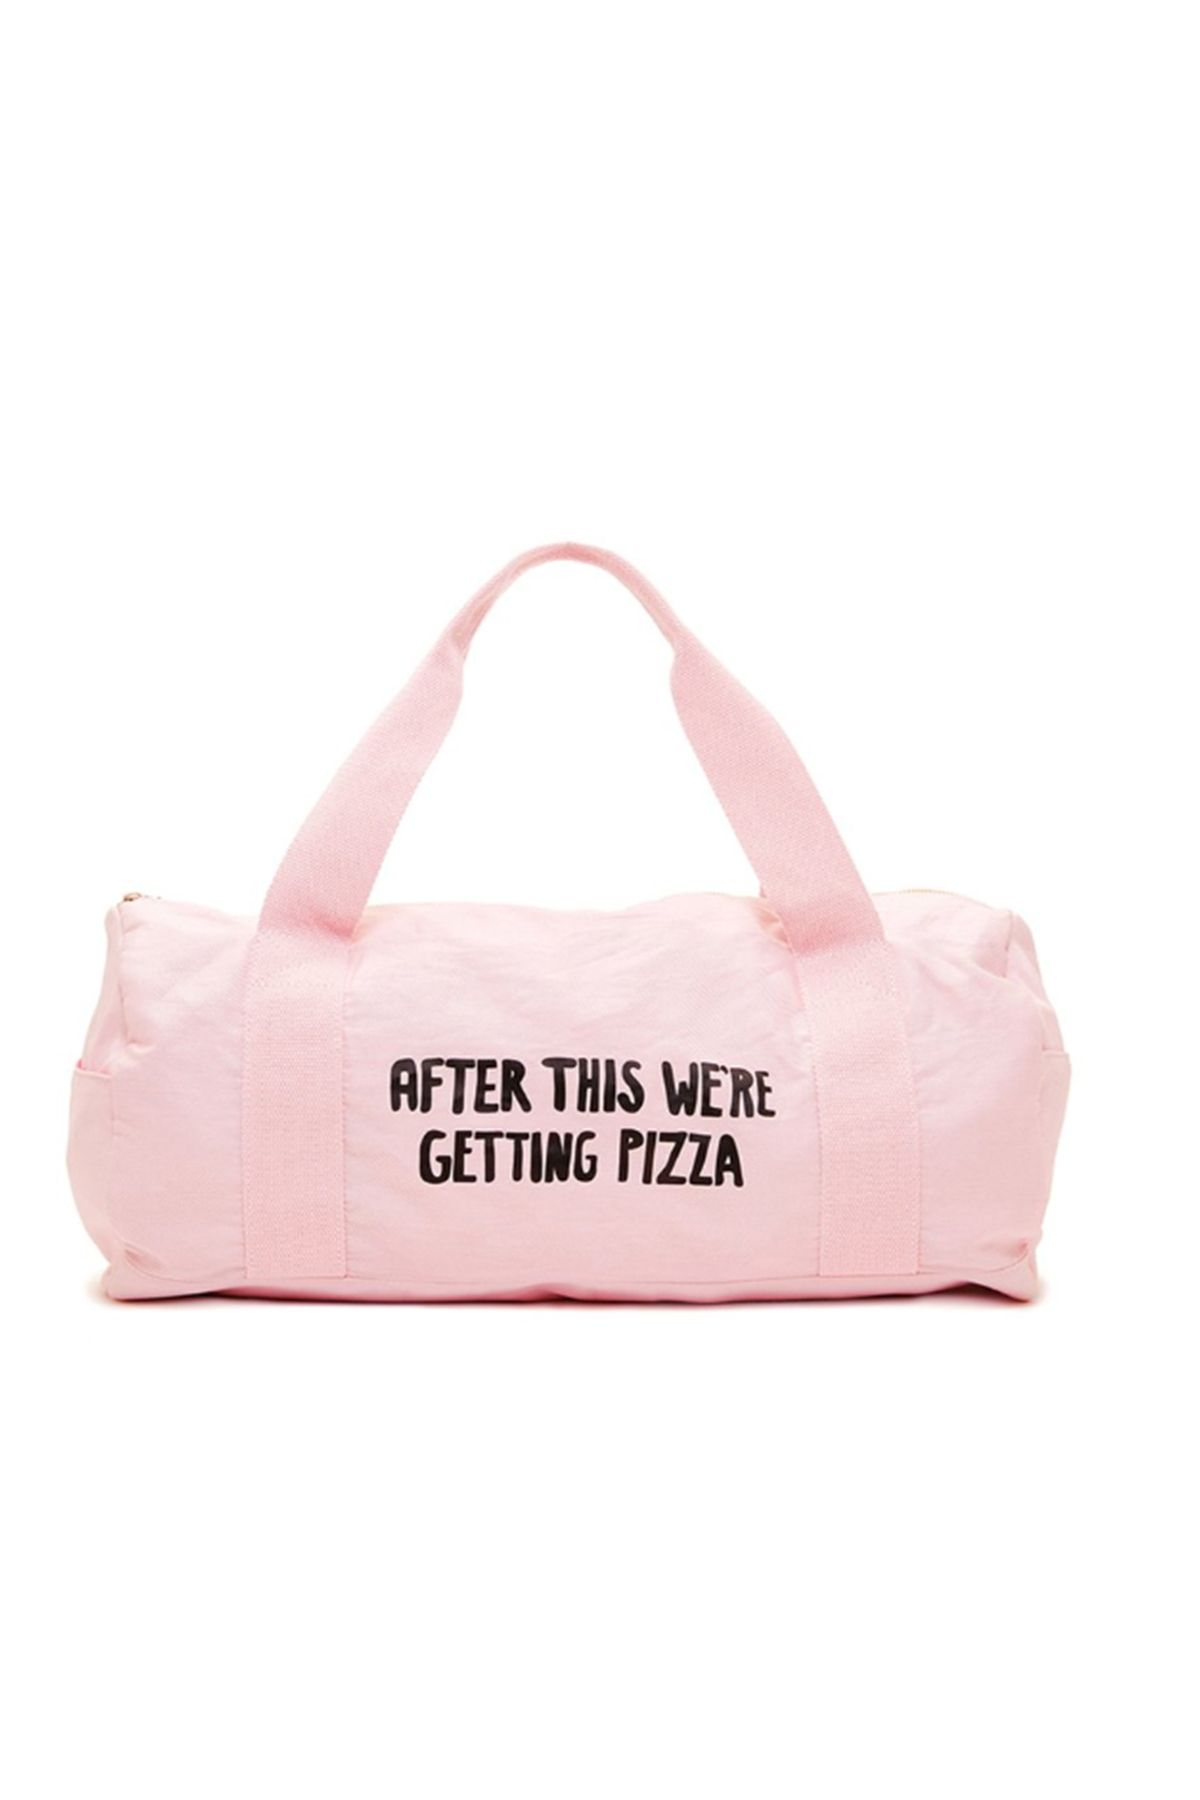 1e800c0586 10 Best Gym Bags for Women 2018 - Cute Sports Backpacks and Duffle Bags